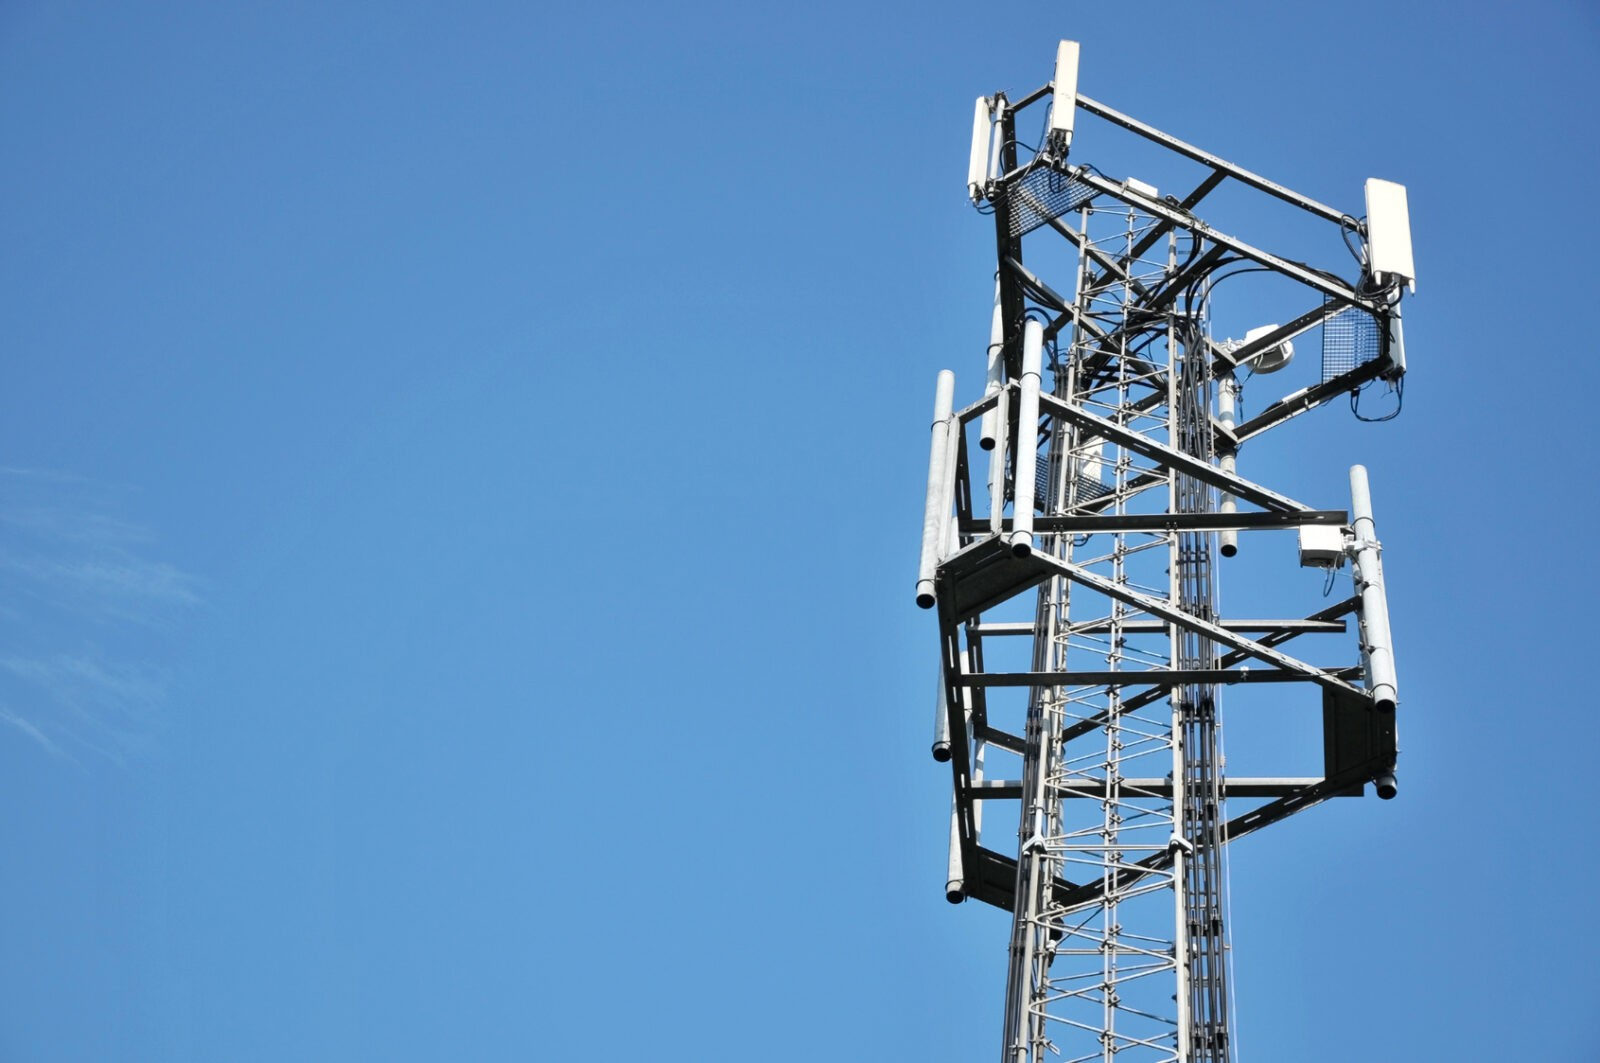 Telecoms Tower